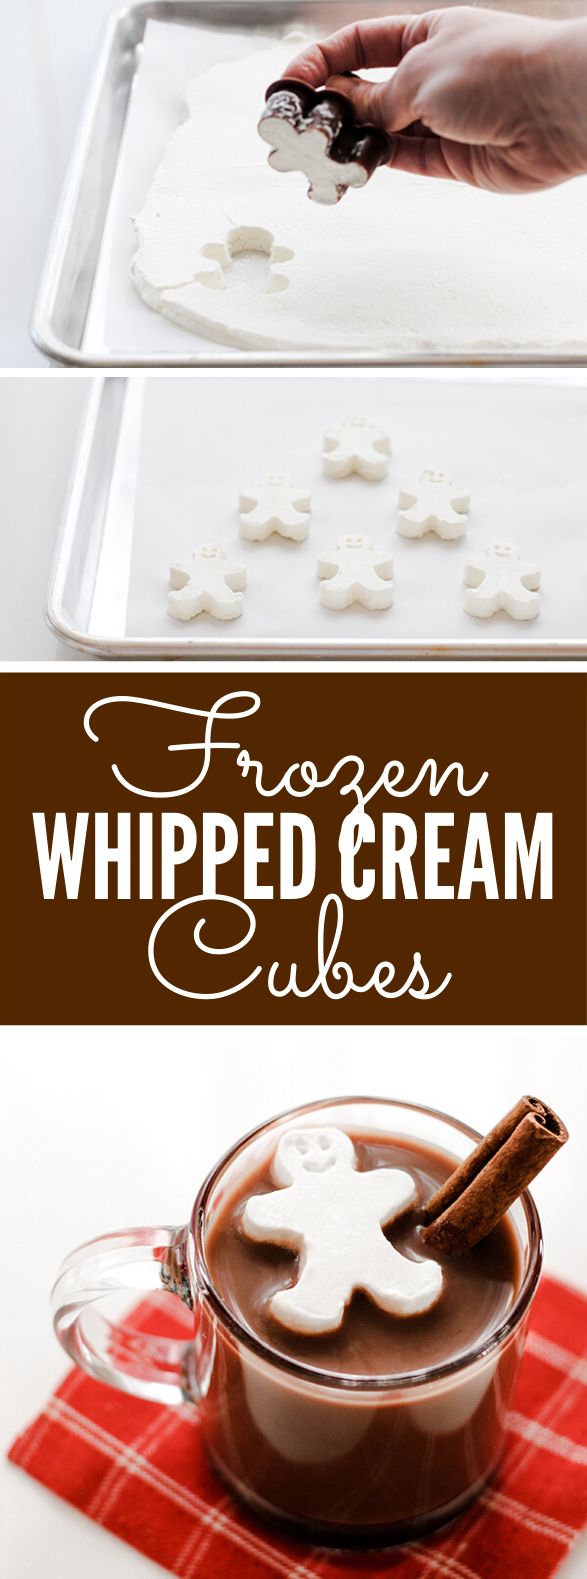 WHIPPED CREAM CUBES #desserts #christmas